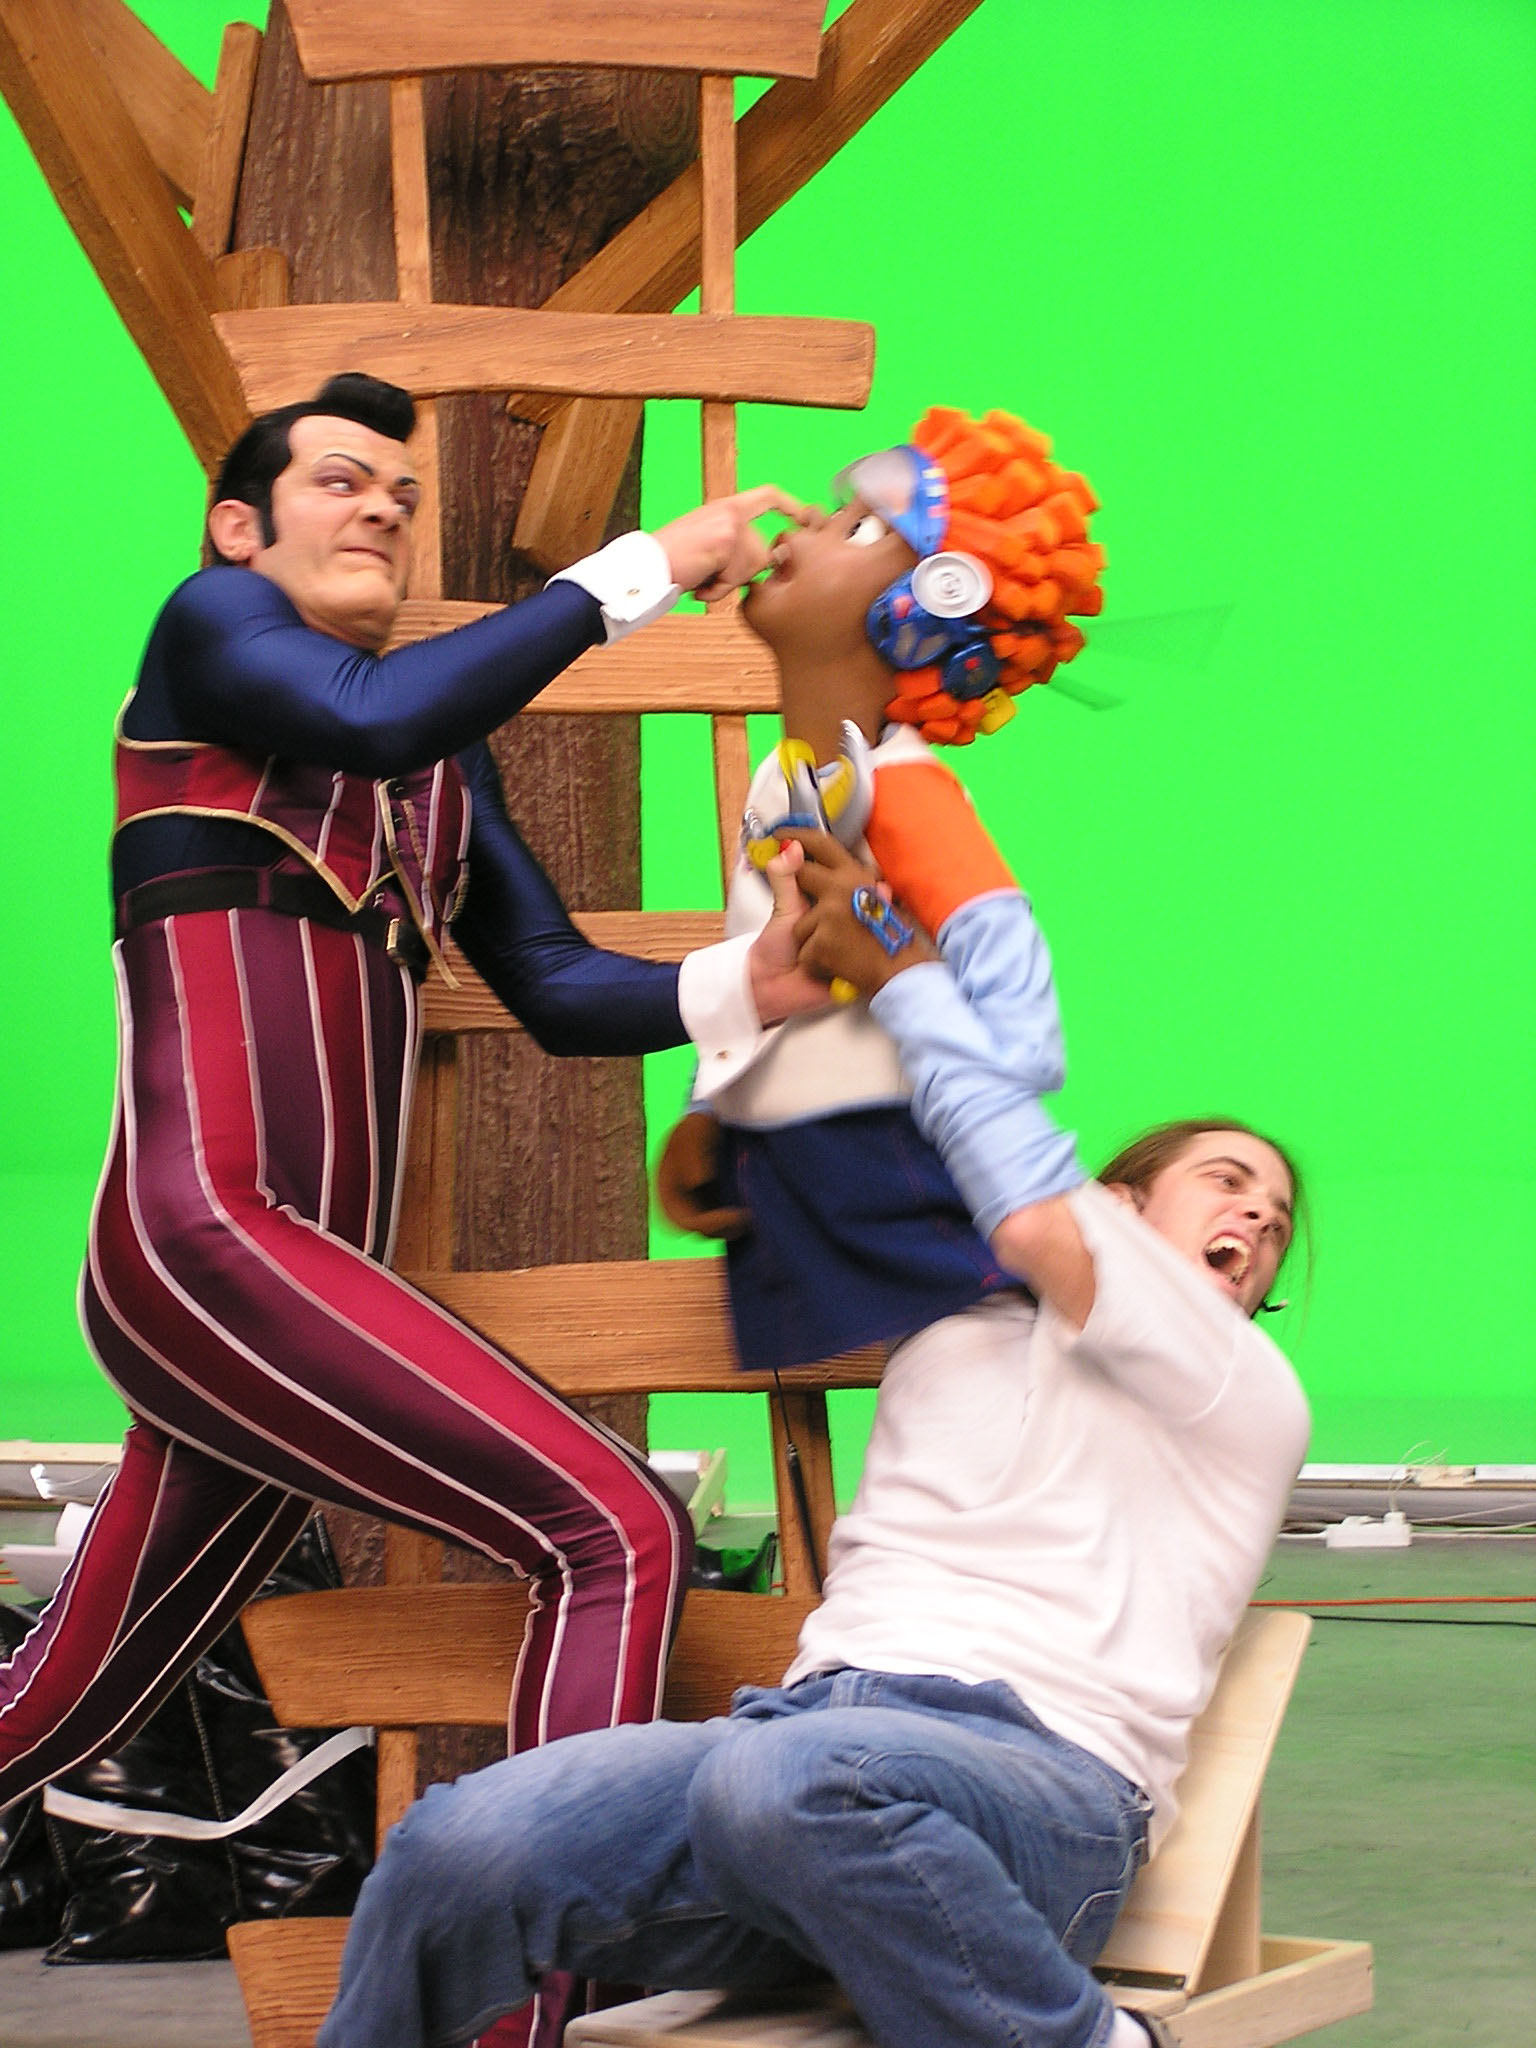 LazyTown-Robbie Rotten and Pixel